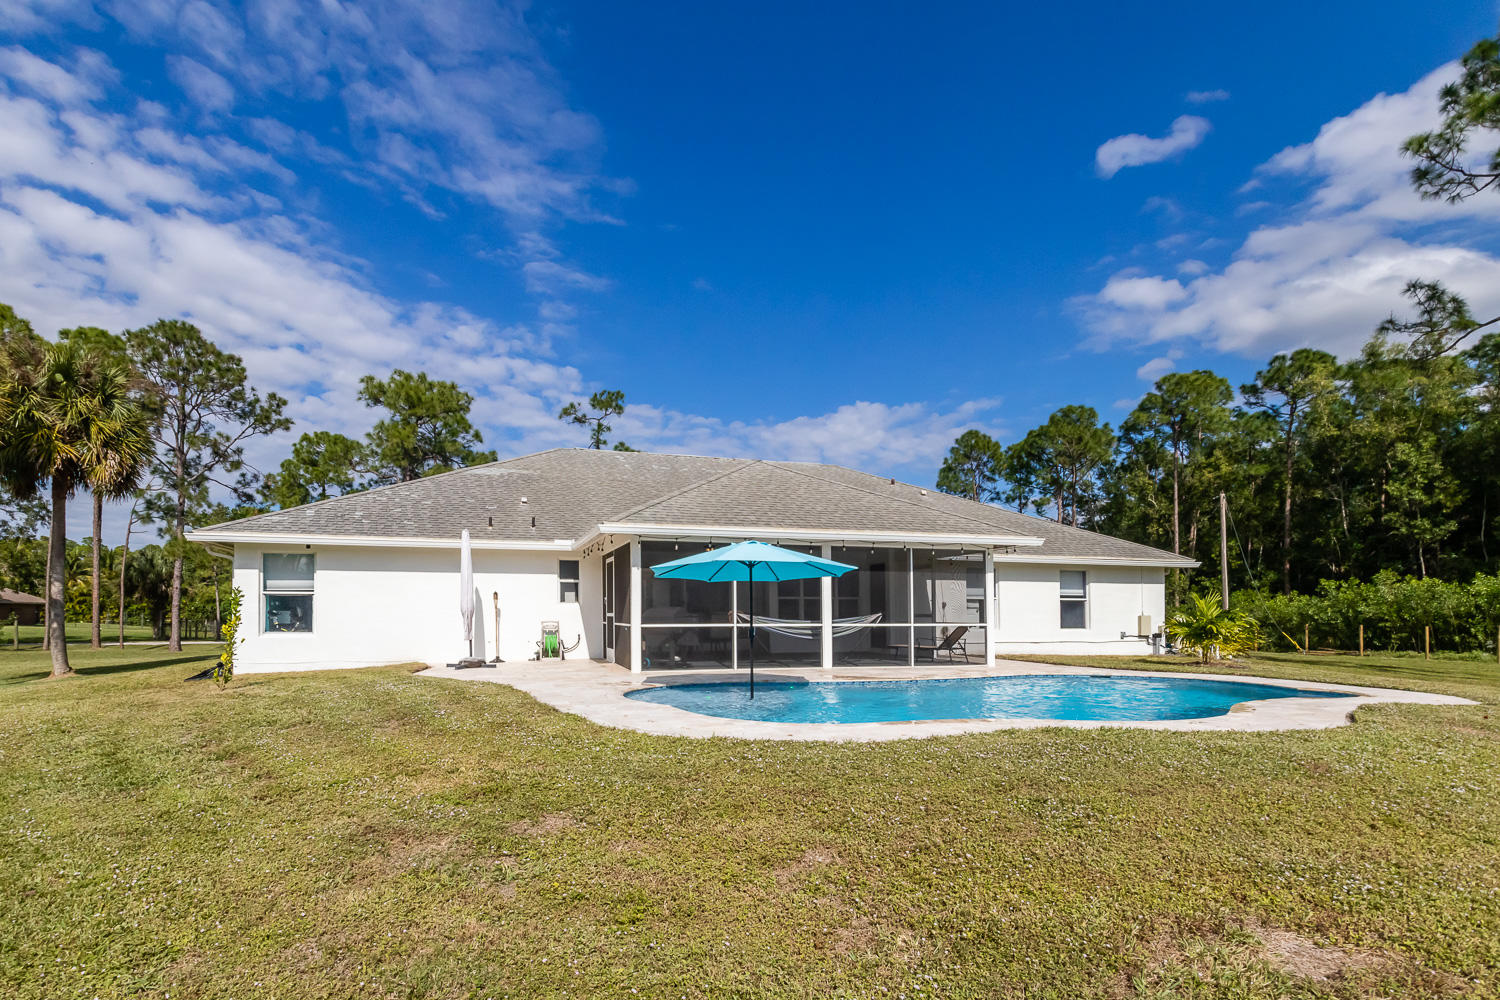 18798 90th Street The Acreage, FL 33470 small photo 45